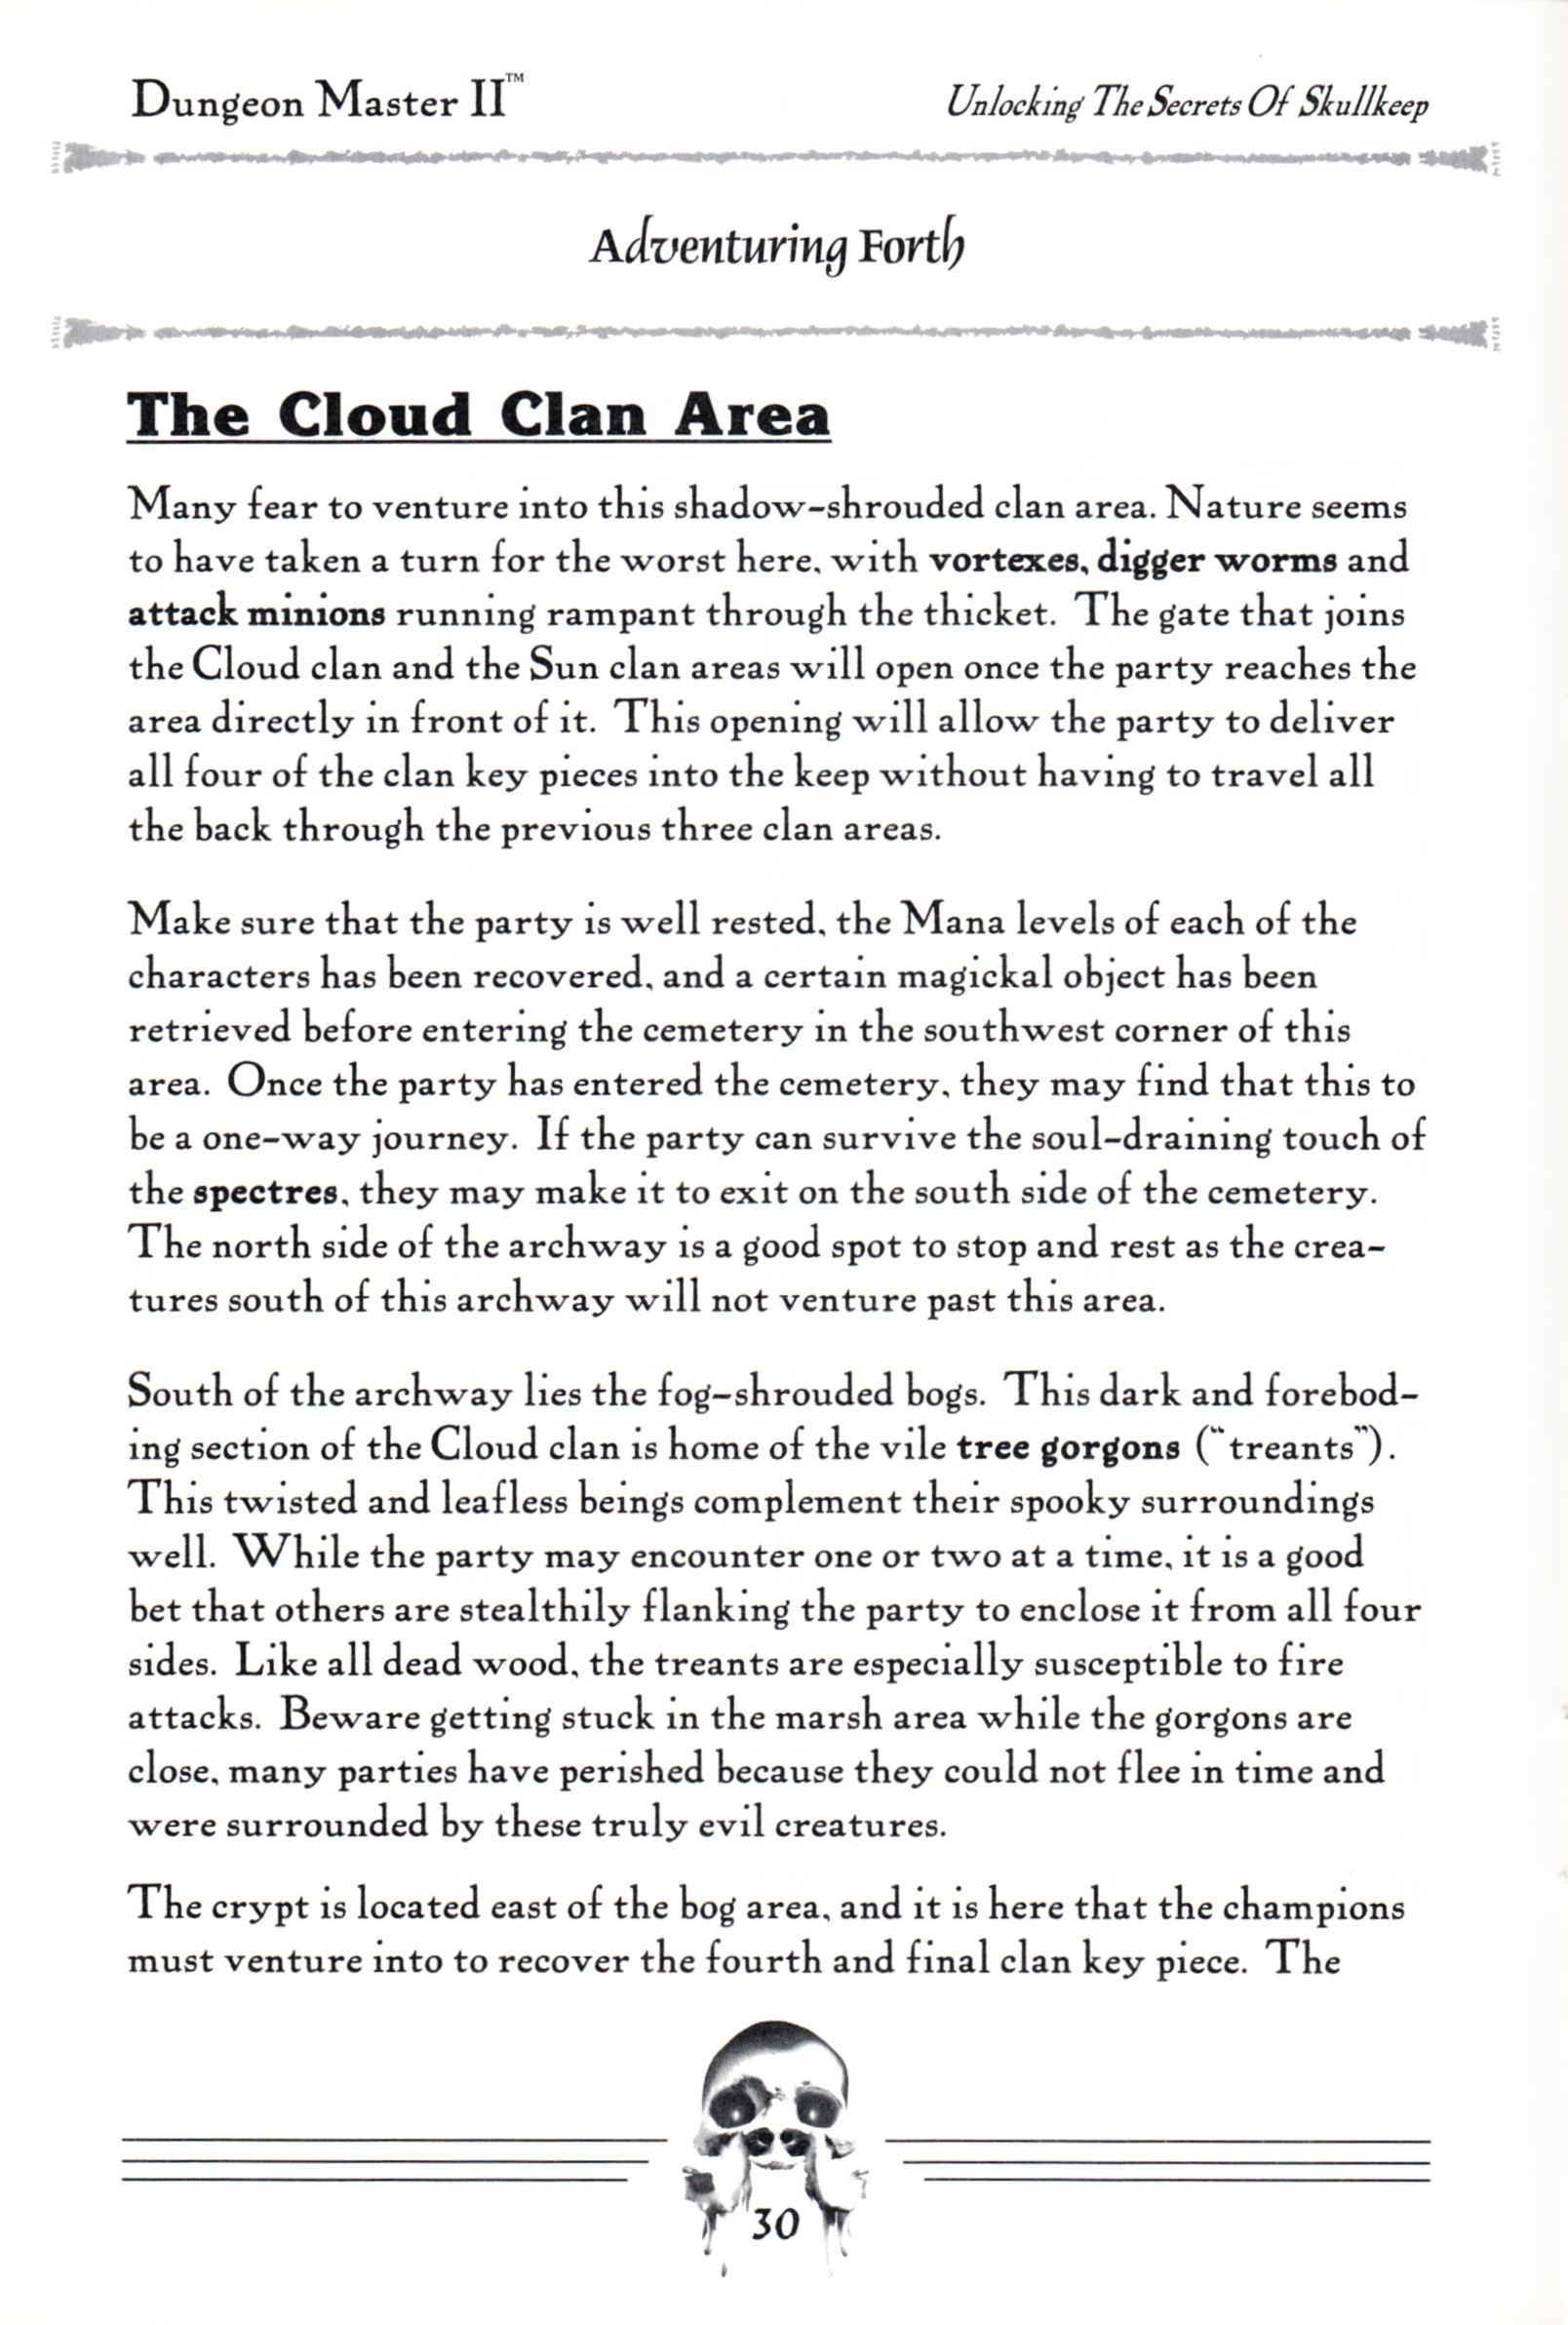 Hint Book - Dungeon Master II Clue Book - US - Page 032 - Scan